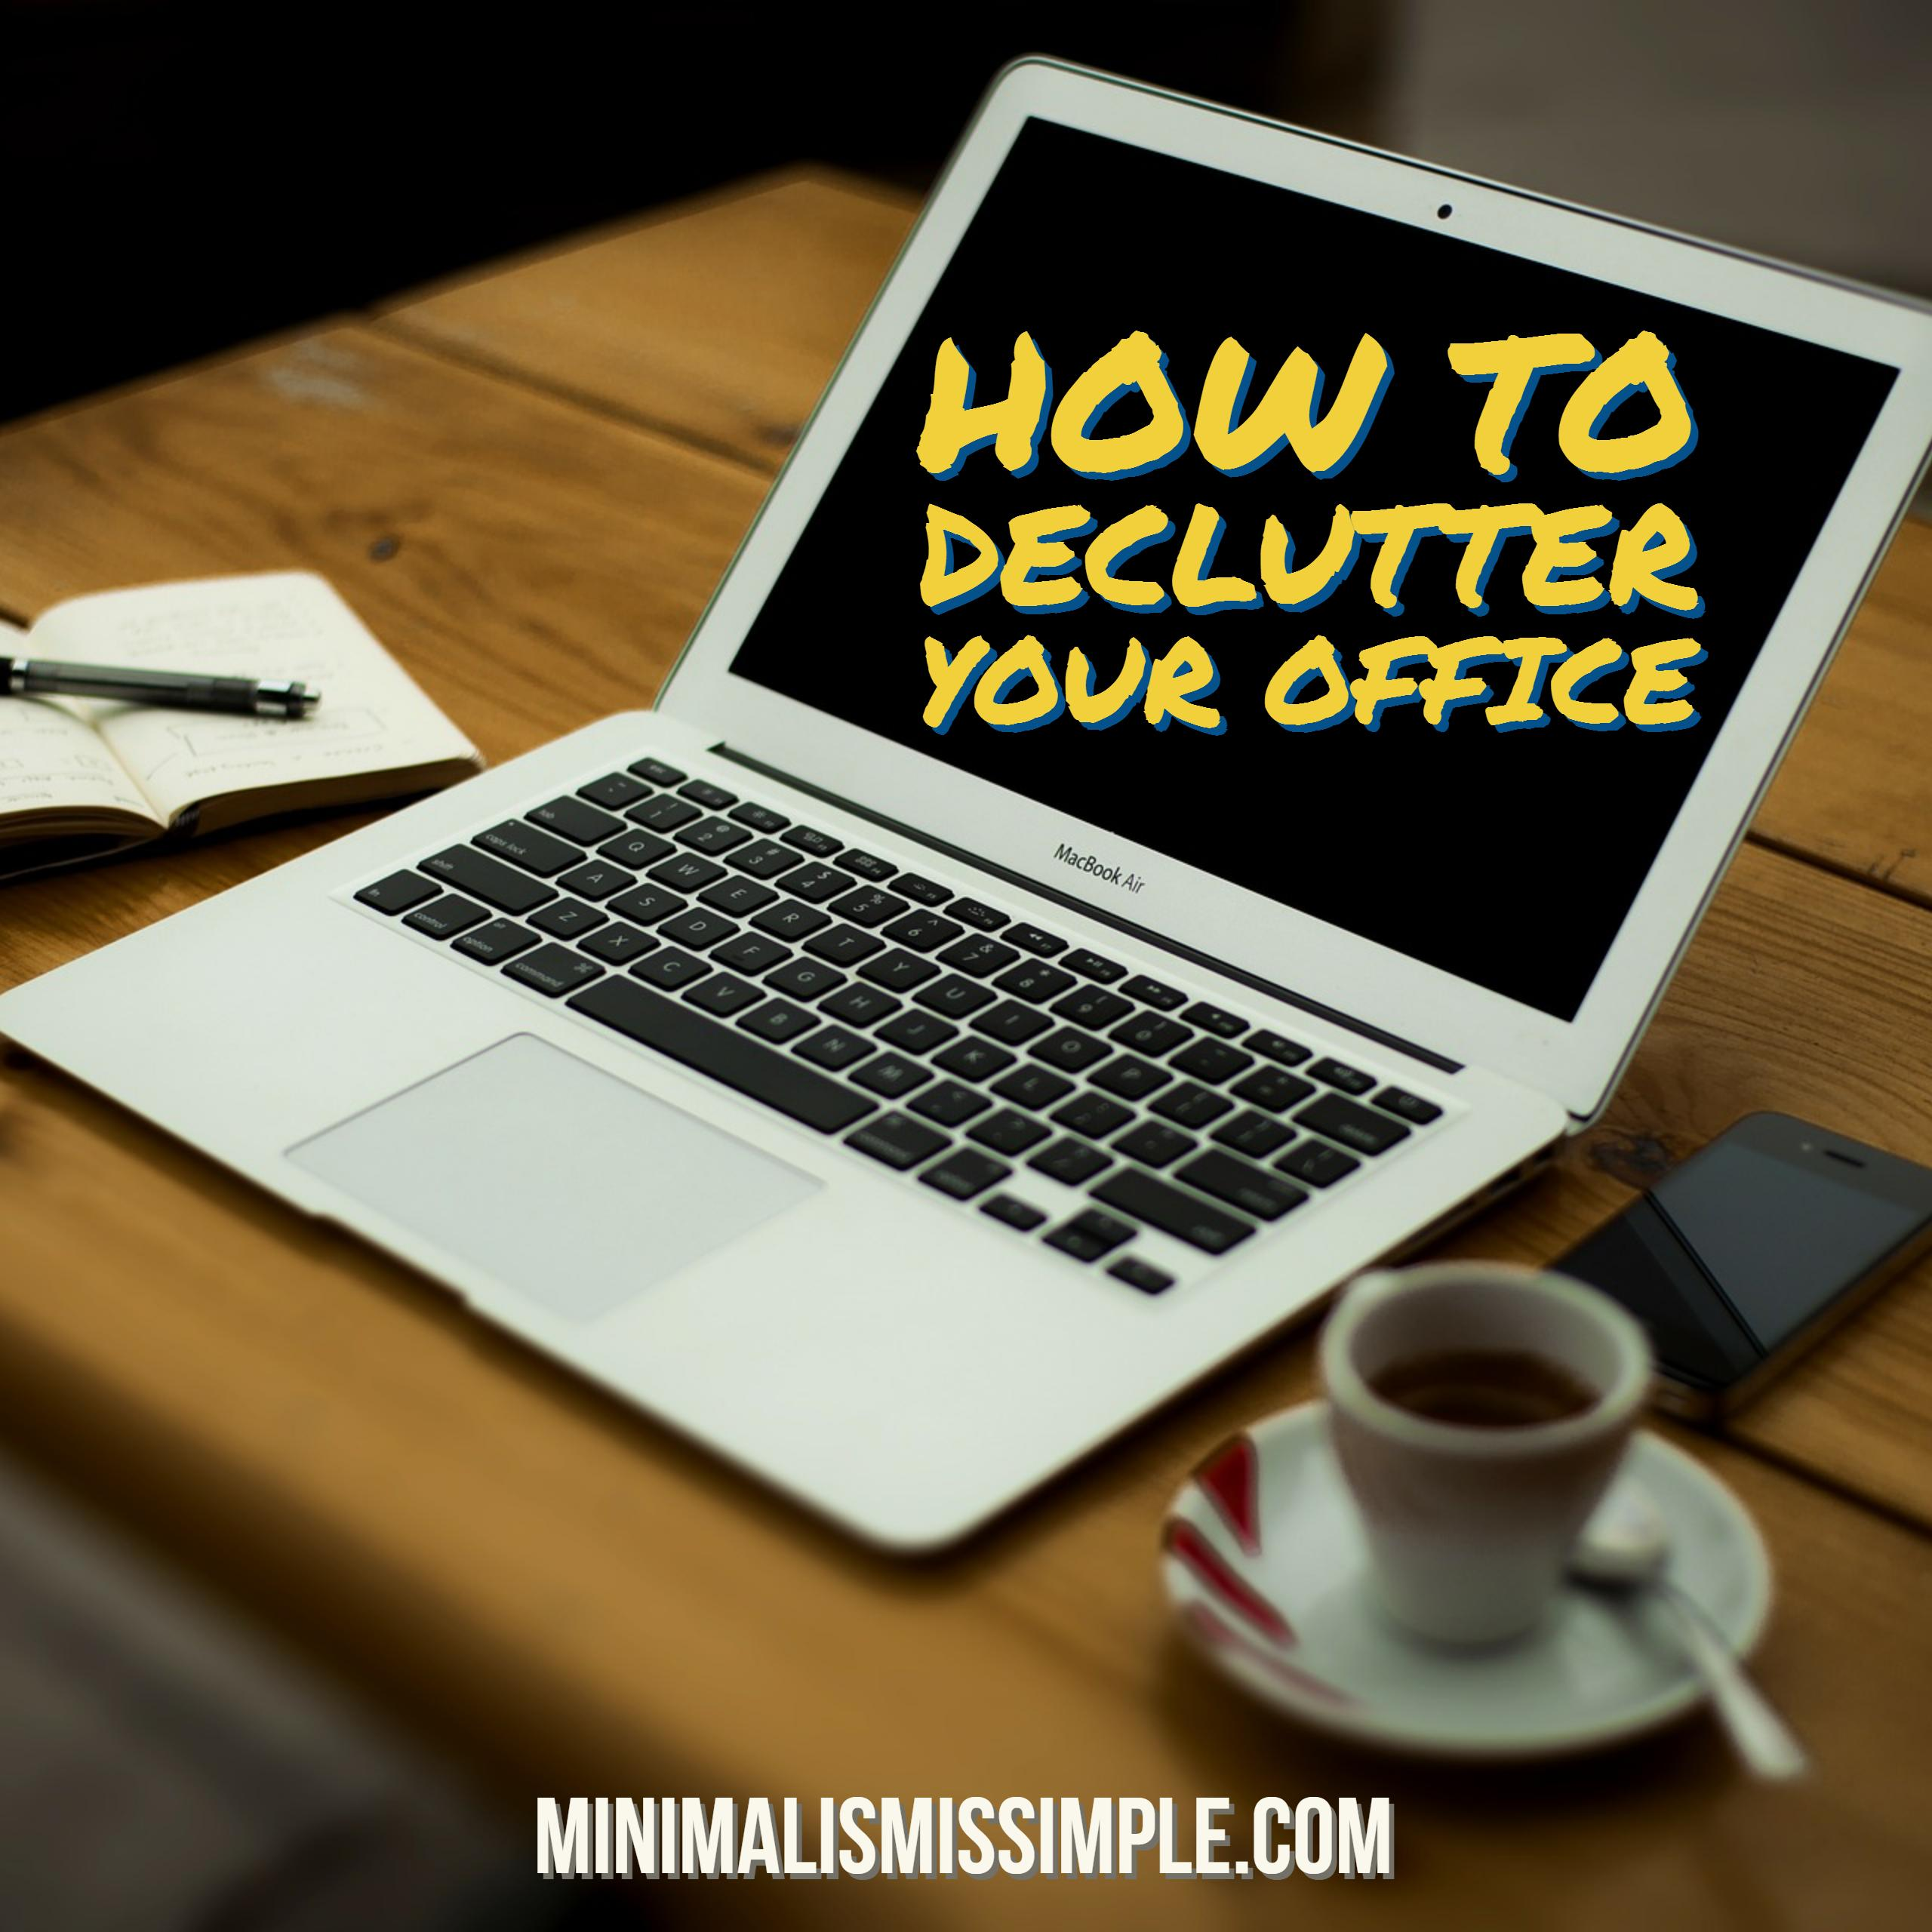 How to declutter your office minimalismissimple.com